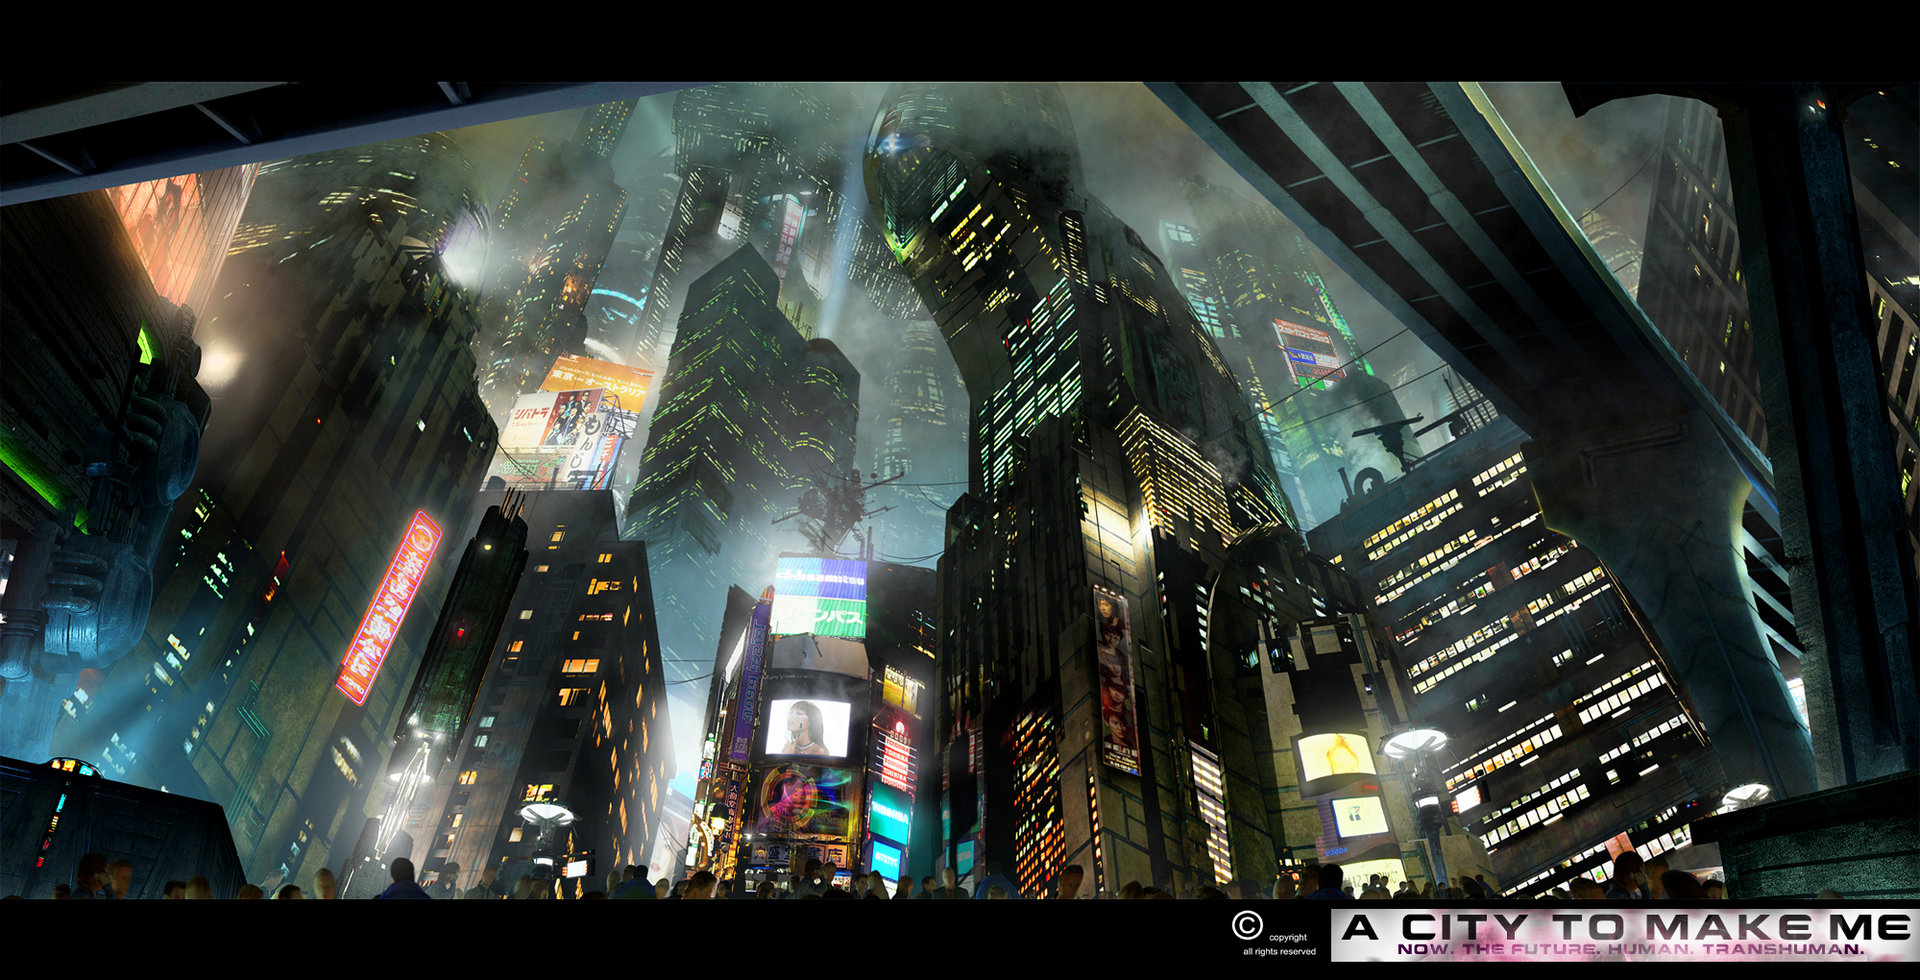 Matte Painting for the Movie A City to Make Me